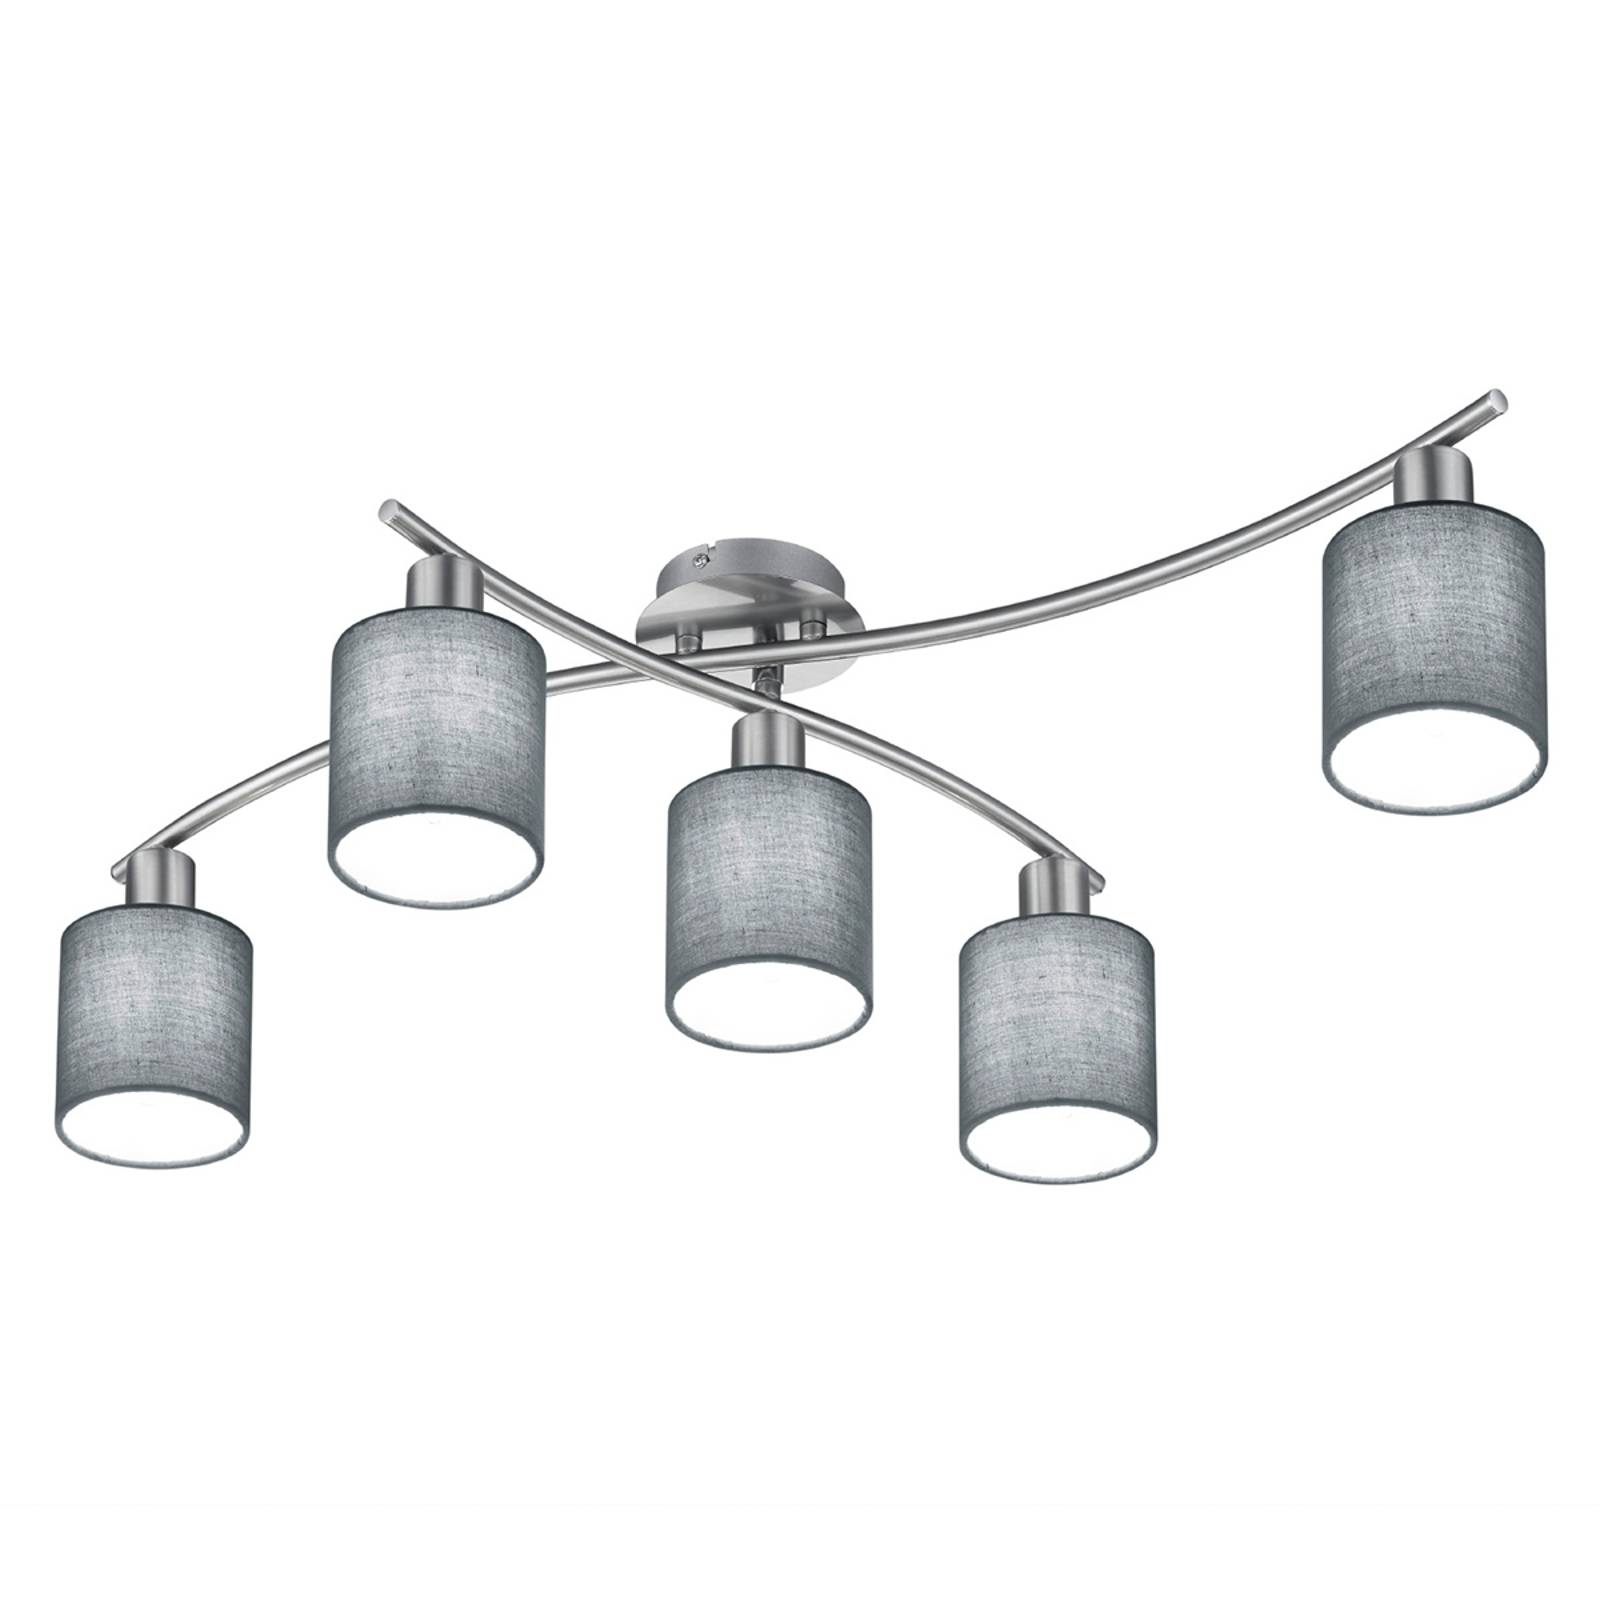 Ceiling light Garda Five-bulb with grey lampshades from Trio Lighting